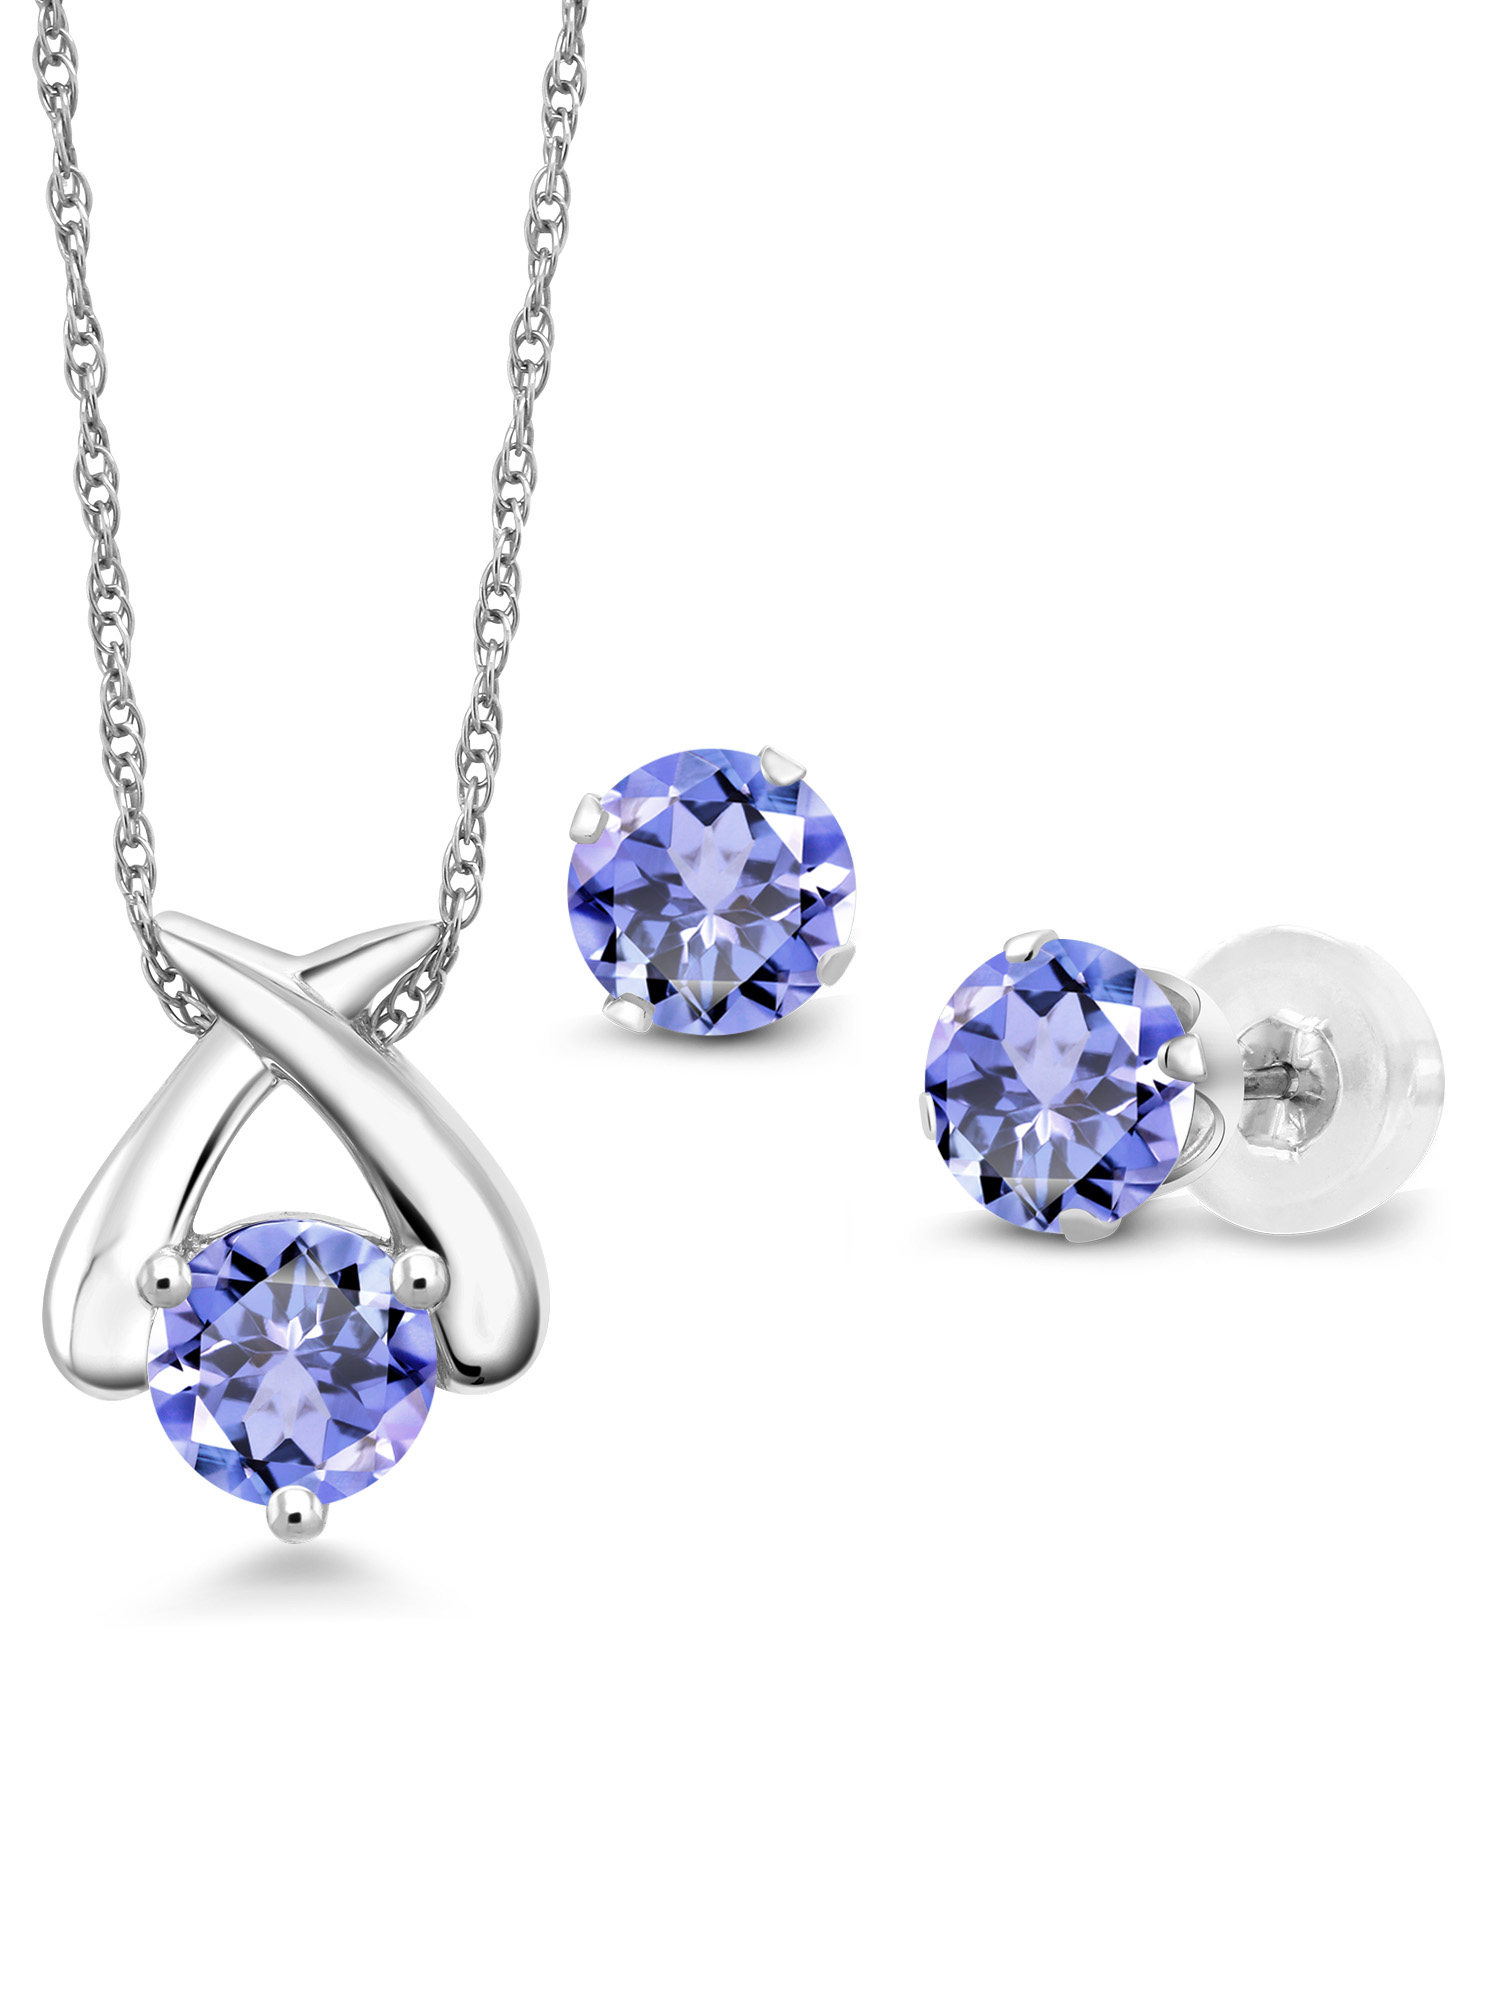 1.38 Ct Round Blue Tanzanite 10K White Gold Pendant Earrings Set With Chain by